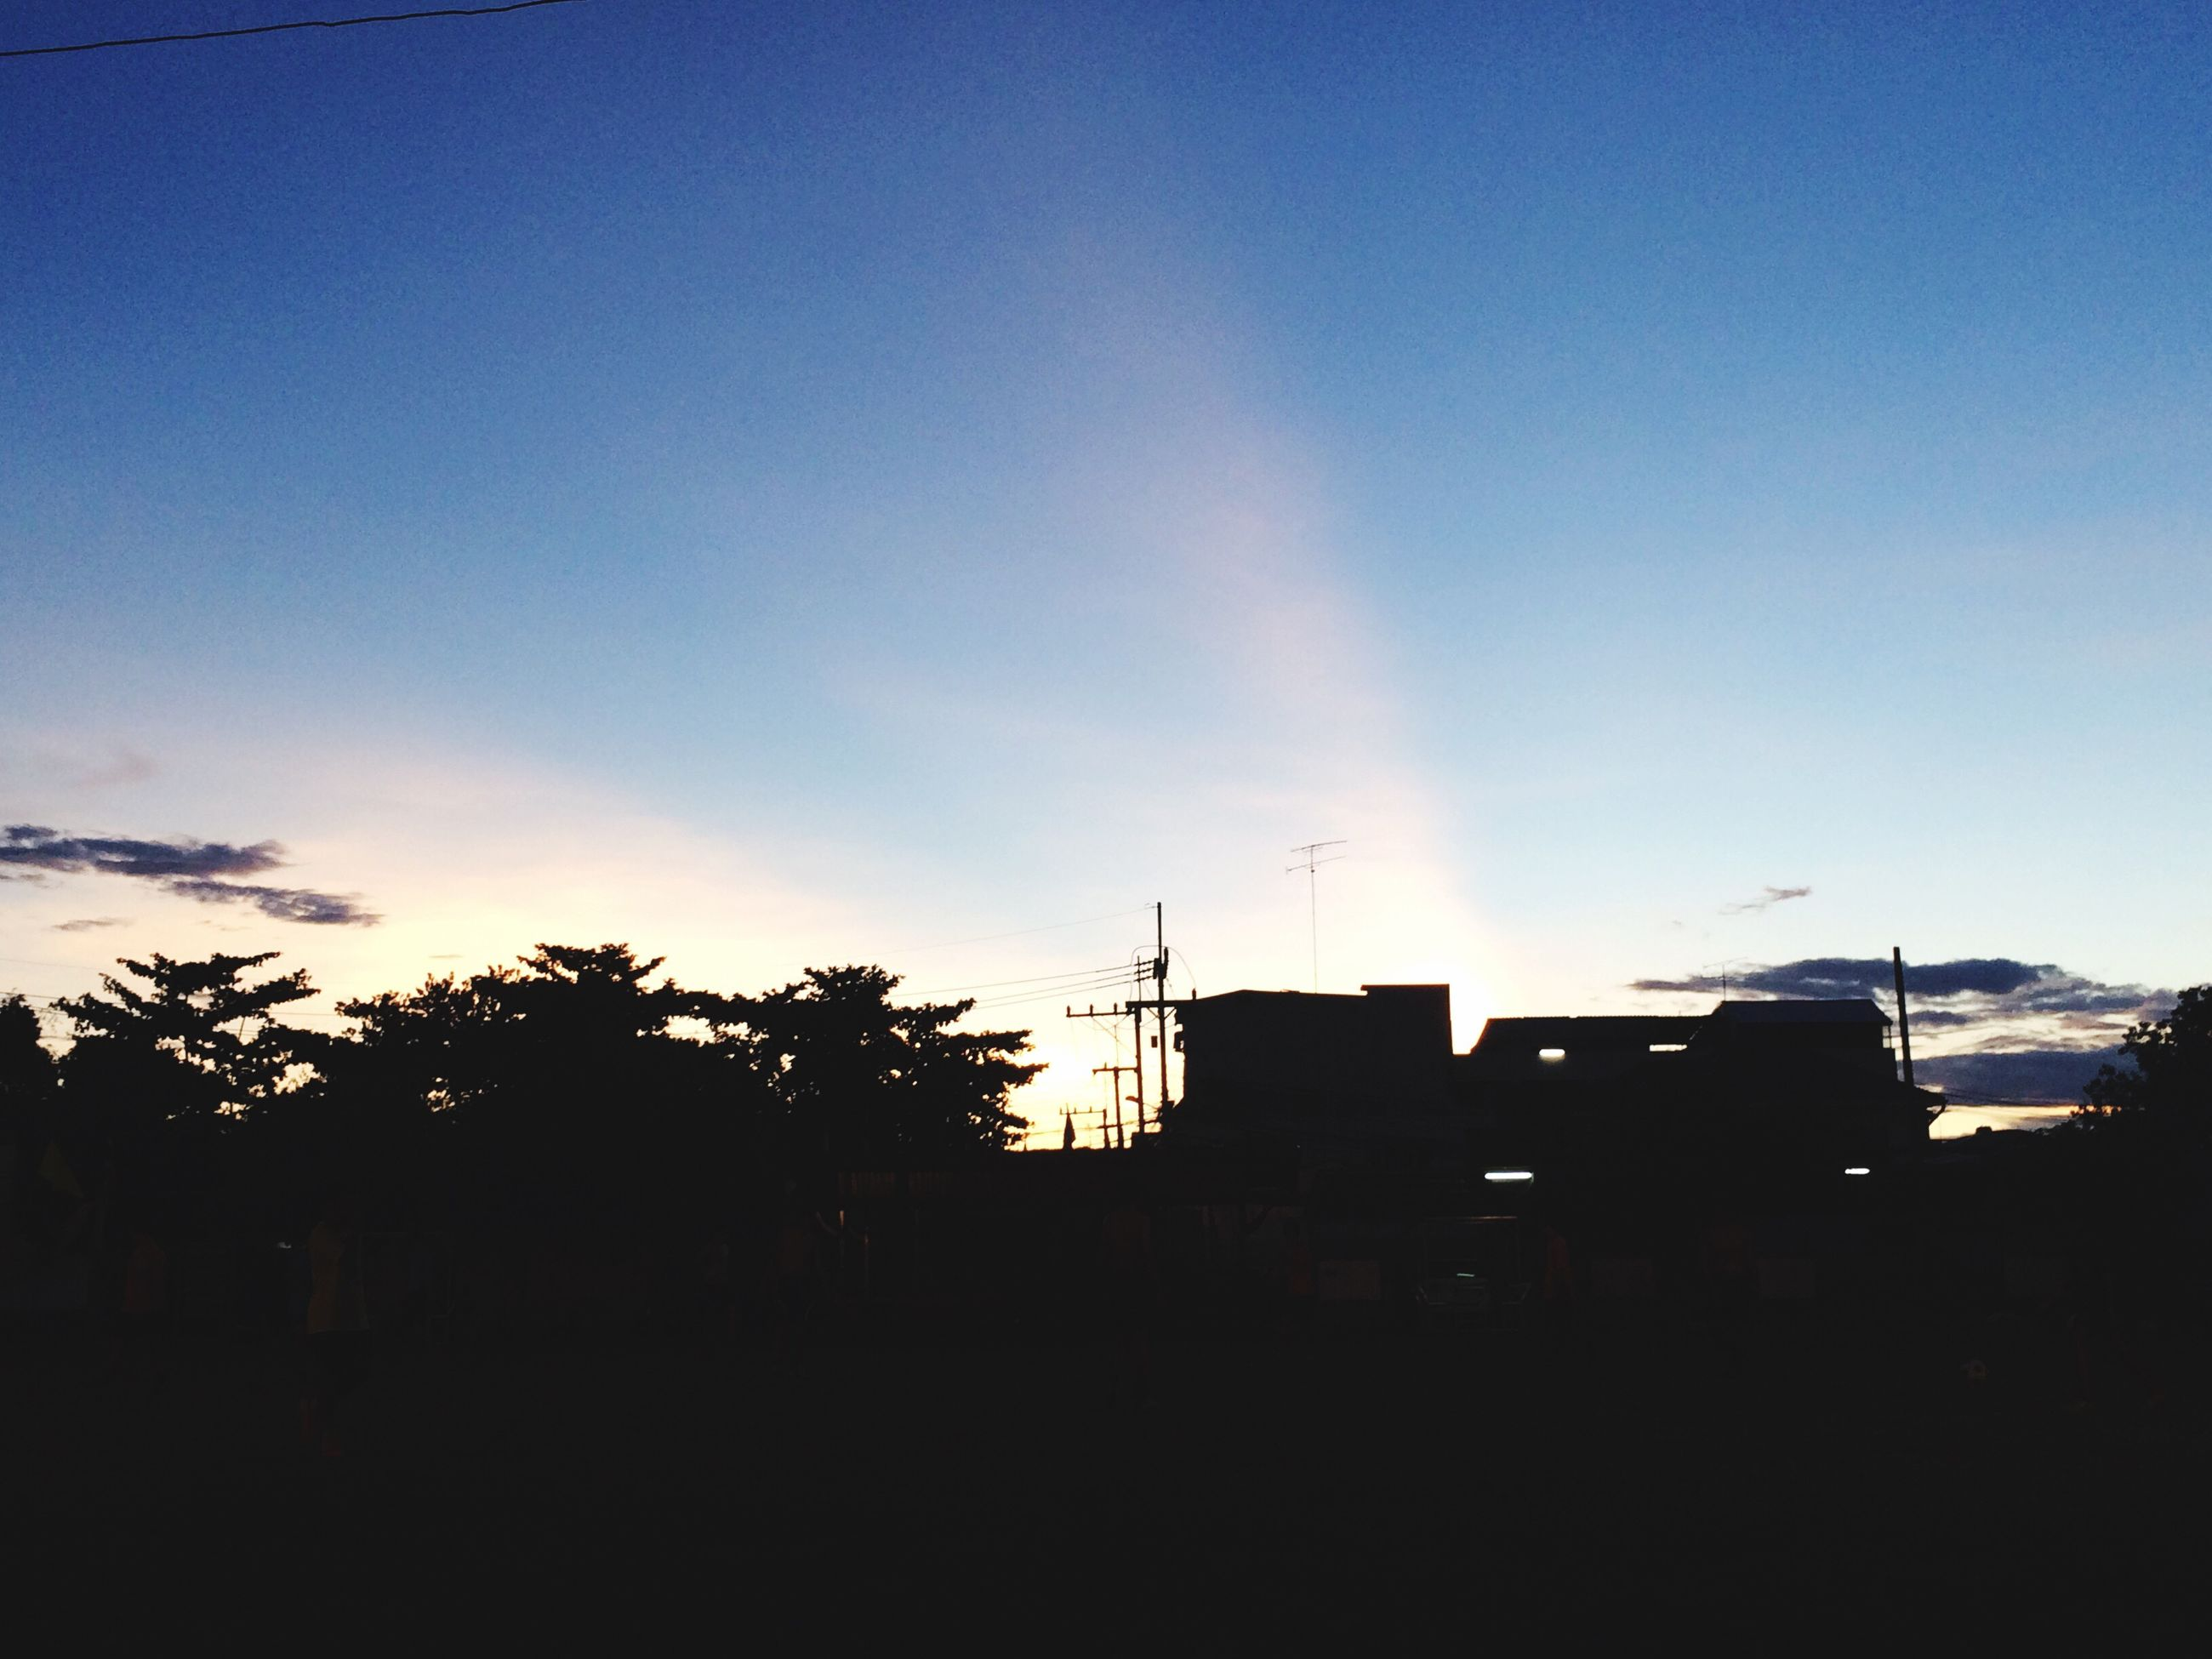 building exterior, architecture, built structure, silhouette, blue, sky, copy space, low angle view, house, sunset, tree, residential structure, sunlight, clear sky, building, residential building, outdoors, no people, dusk, nature